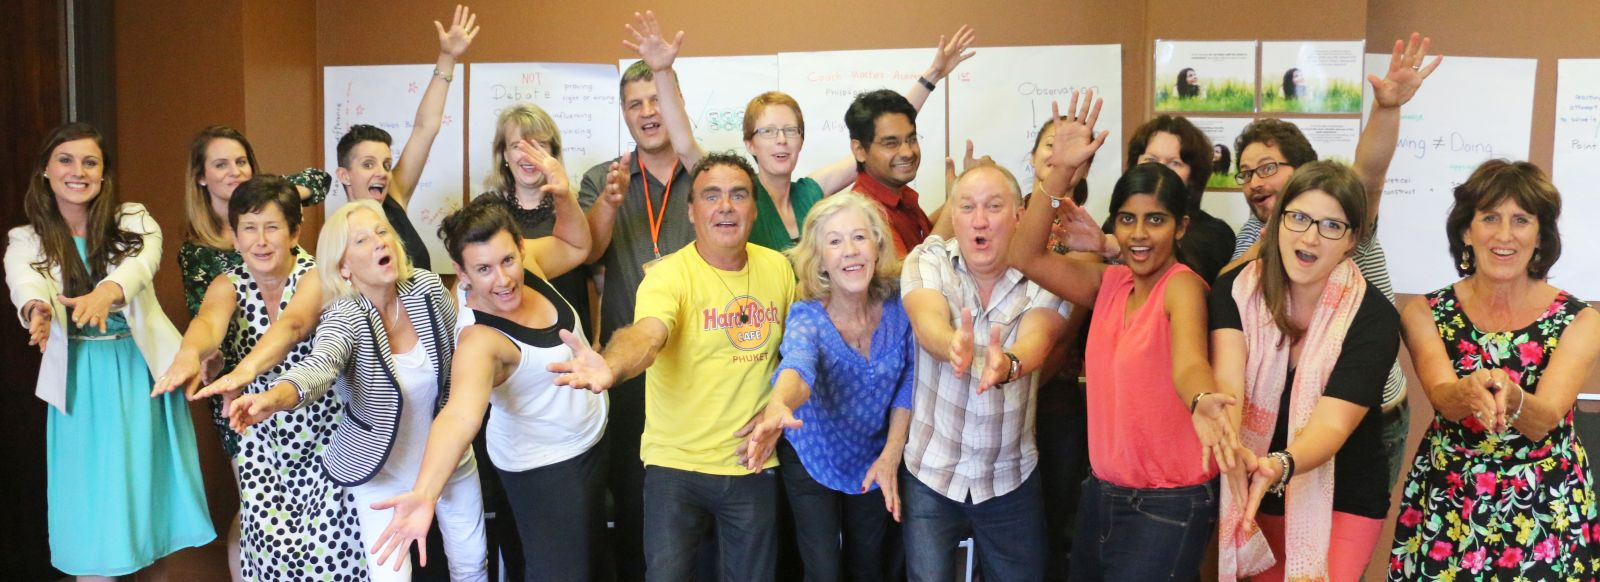 50th Cohort Auckland Feb 2016 Group 2.jpg